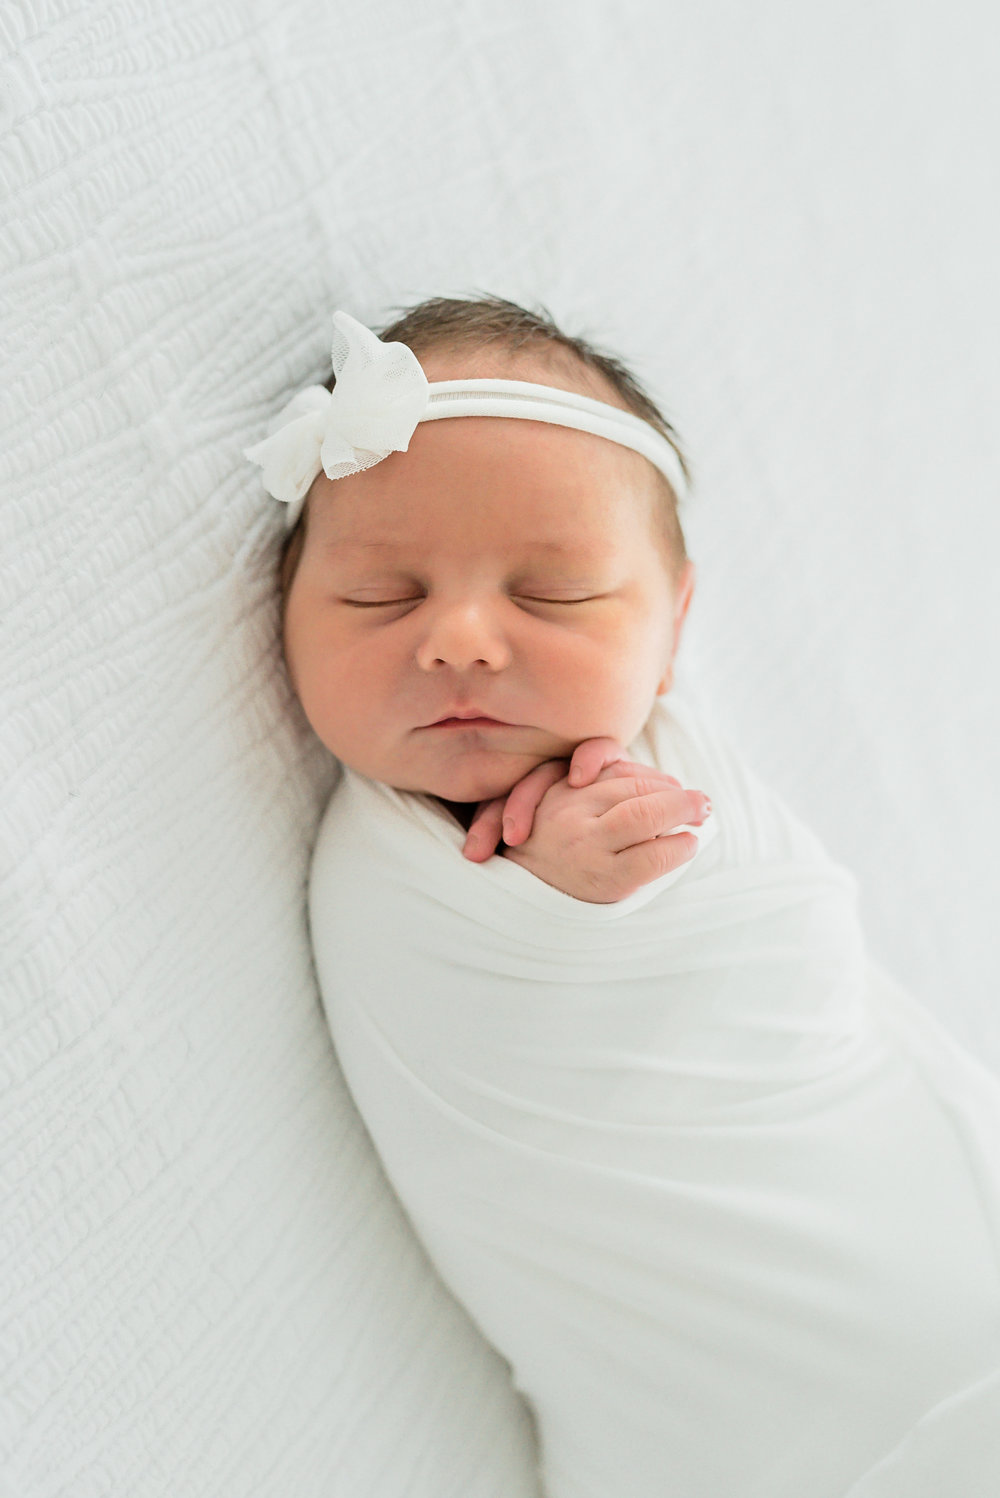 Summerville-Newborn-Photographer-Following-Seas-Photography-FSP_9105 copy.jpg